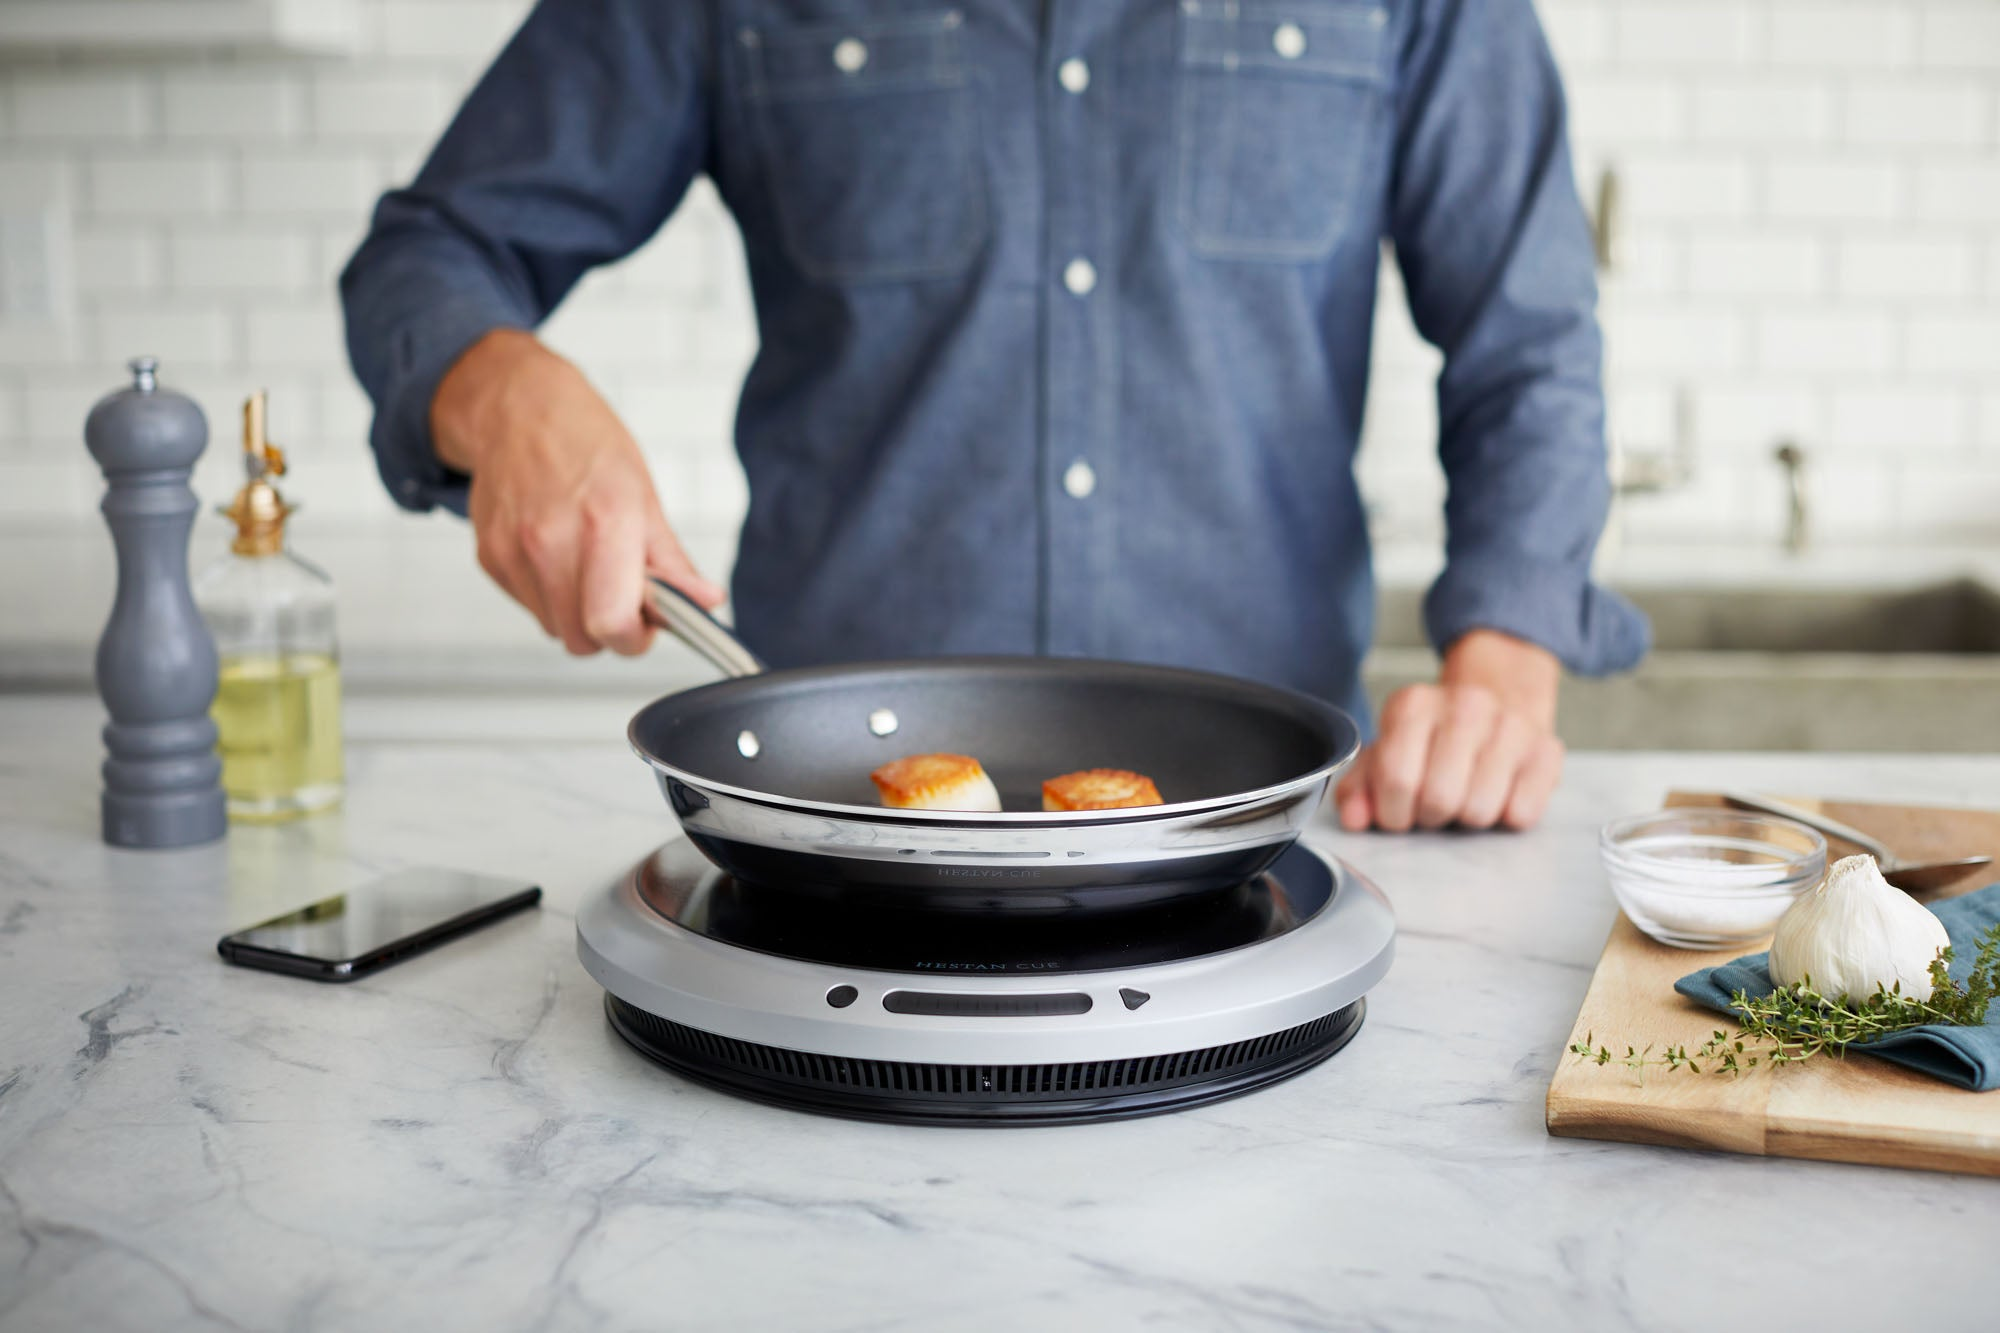 How Cue Reinvented Non-stick Cookware